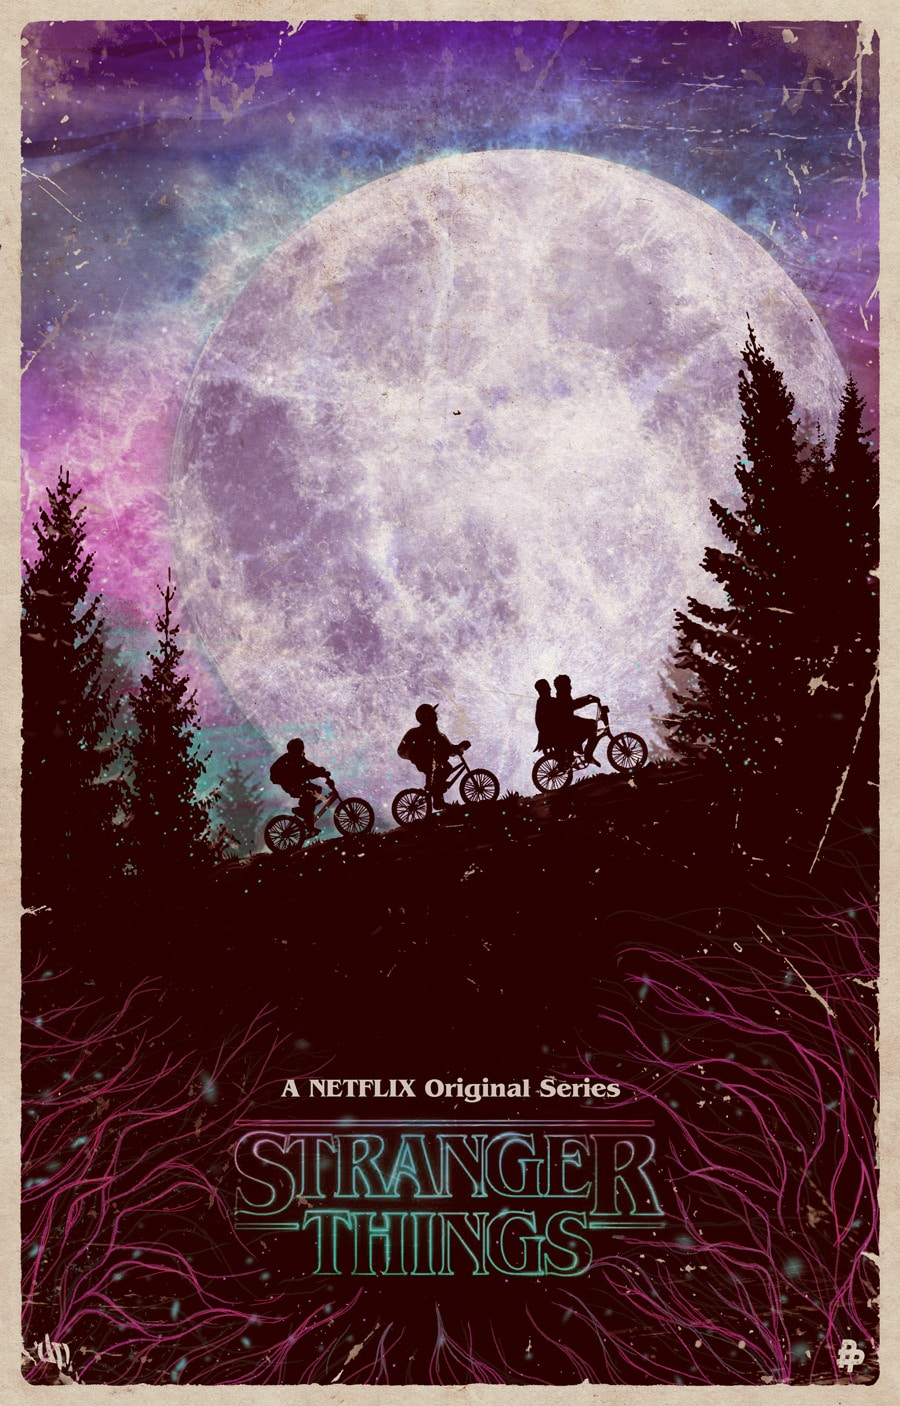 Stranger Things poster Mike Lucas and Dustin